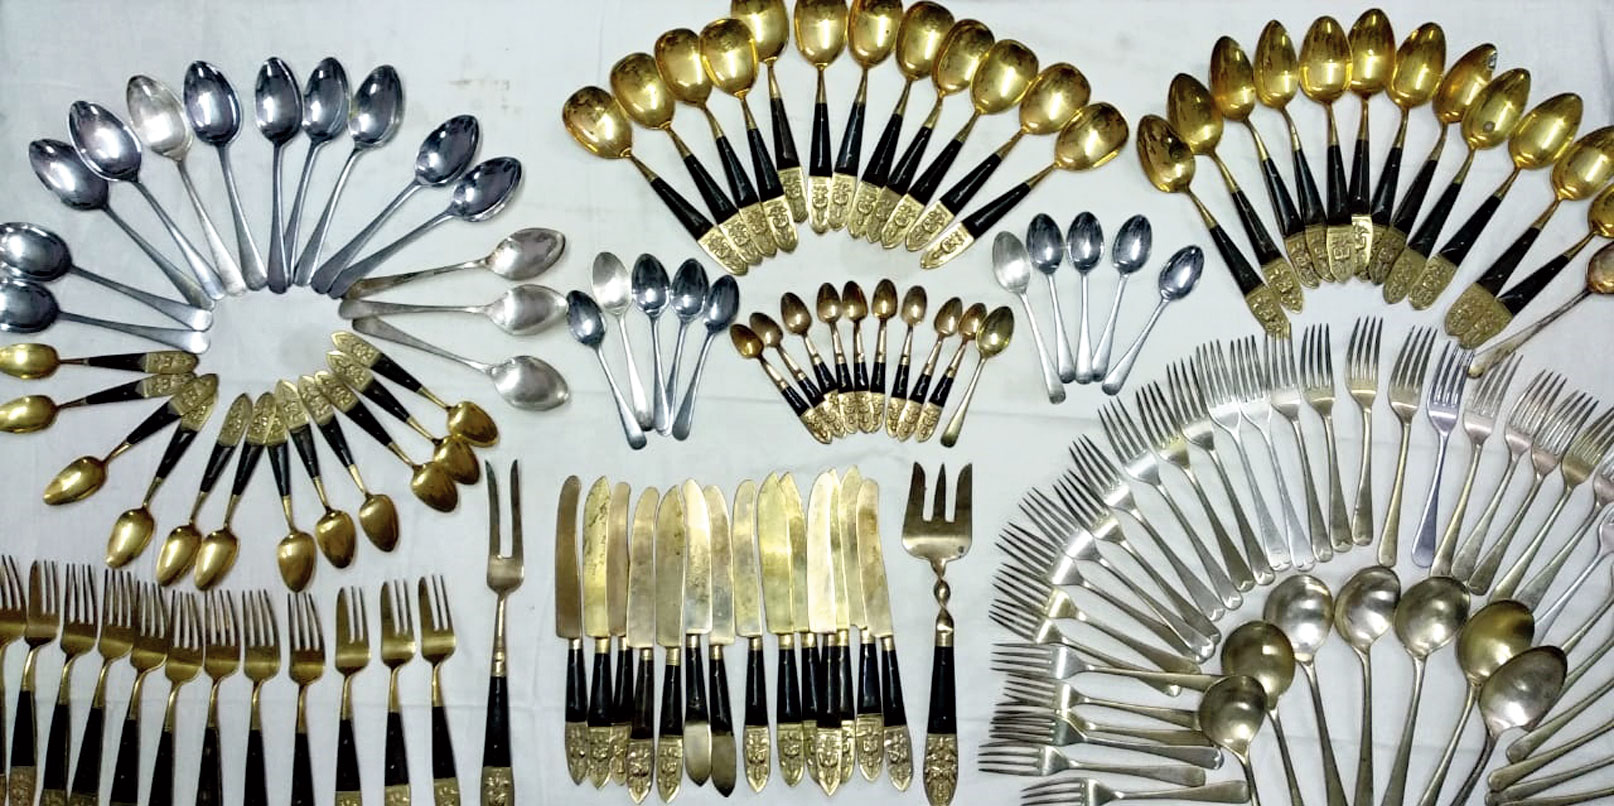 The cutlery items seized from Meghnath Mandal.